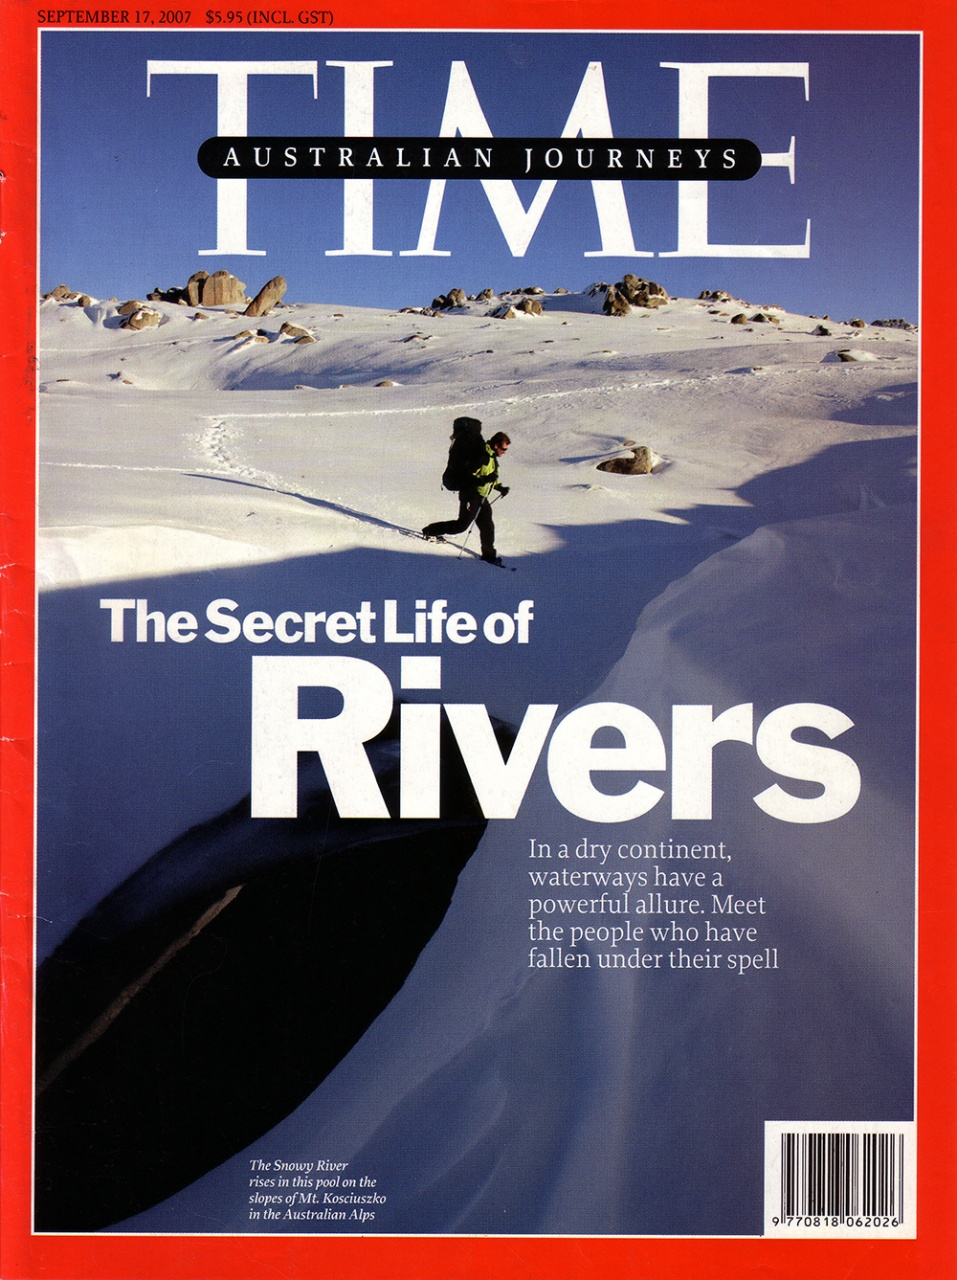 TIME COVER STORY